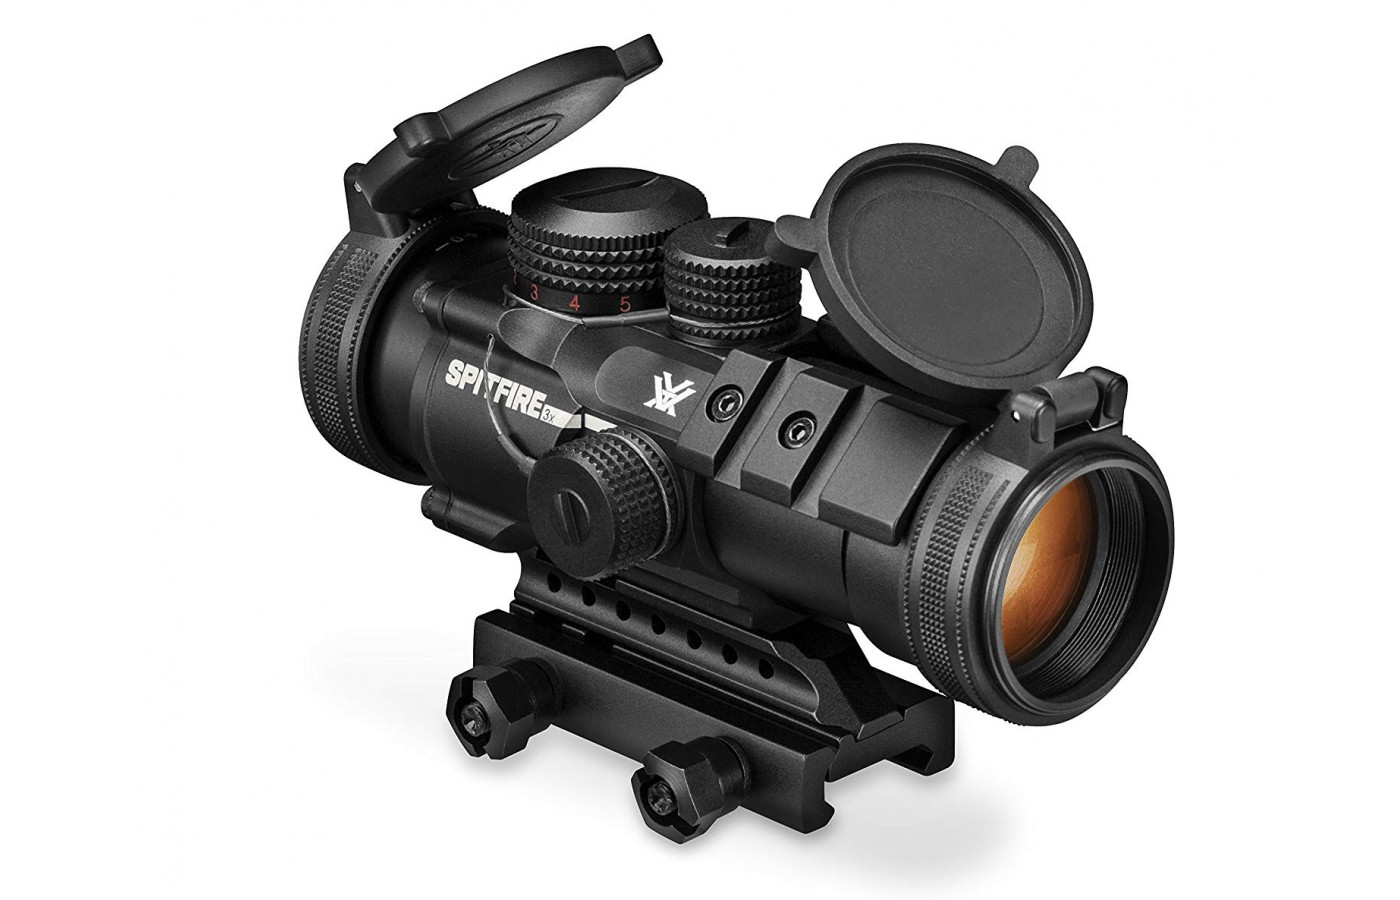 This prism scope has an impressive array of stats and specs that will perform well between 0-500 yards as you adjust to suit the distance and conditions.